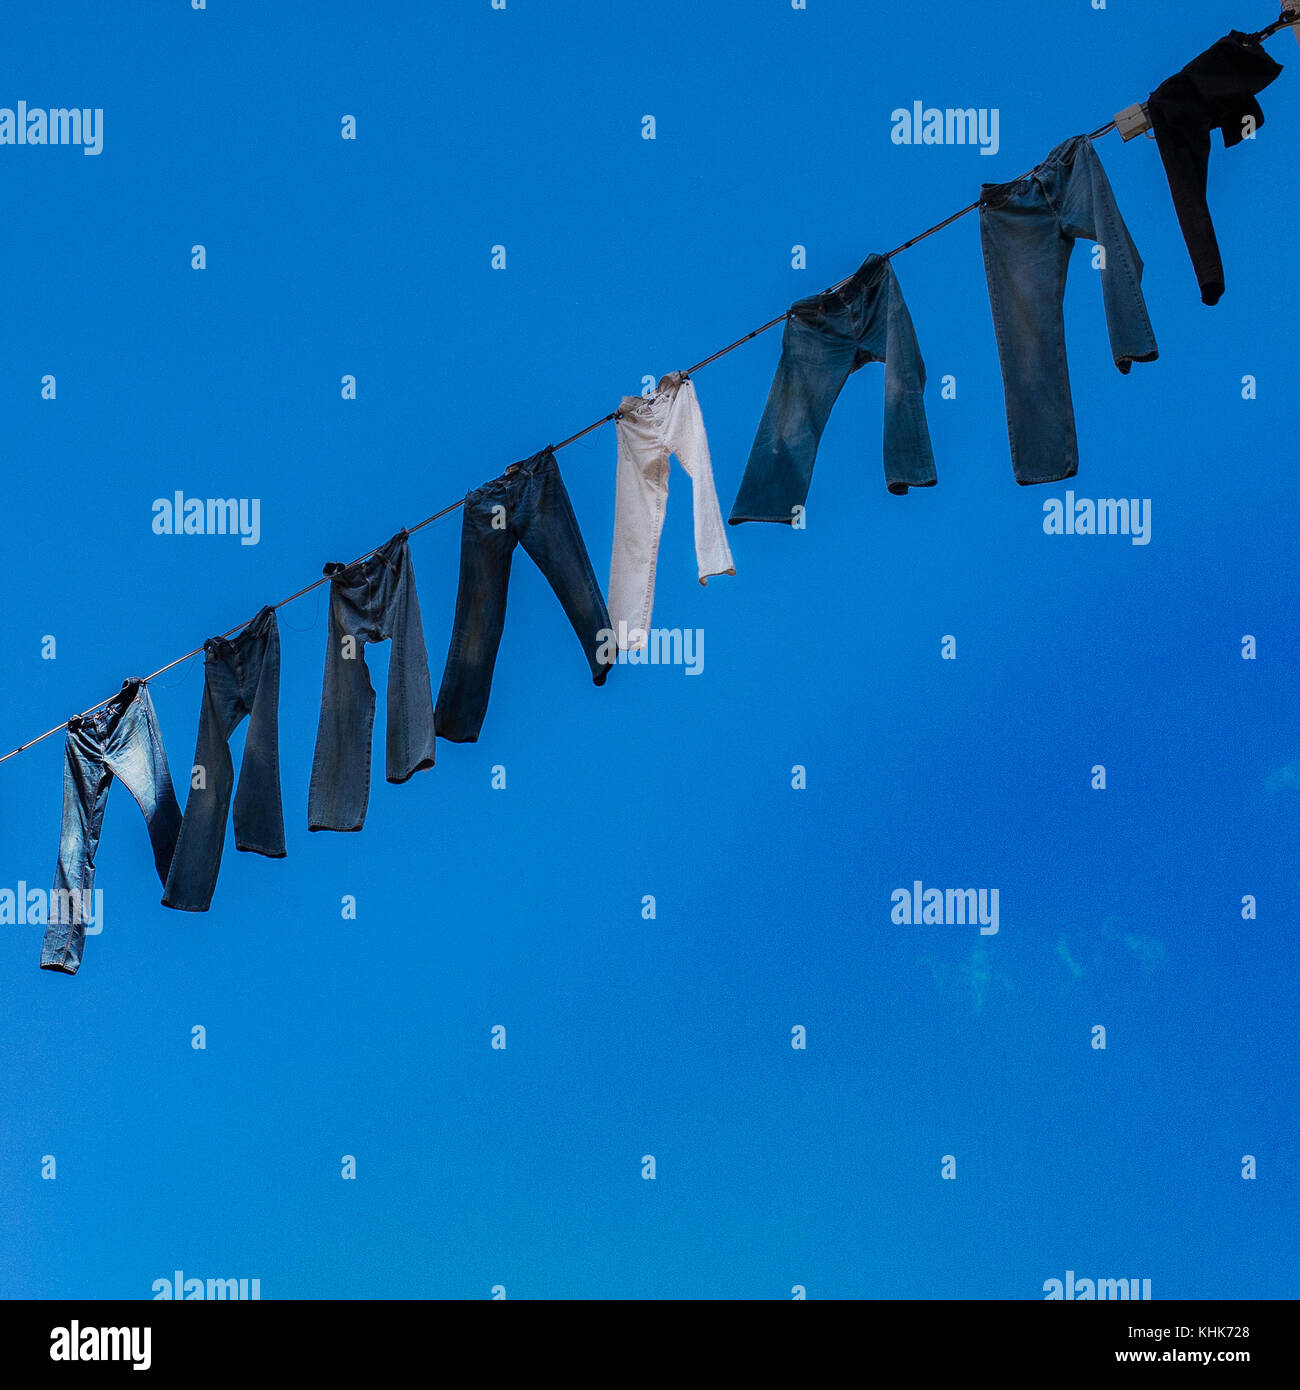 blue jeans hanging on line with the sky behind in Malmo Sweden - Stock Image